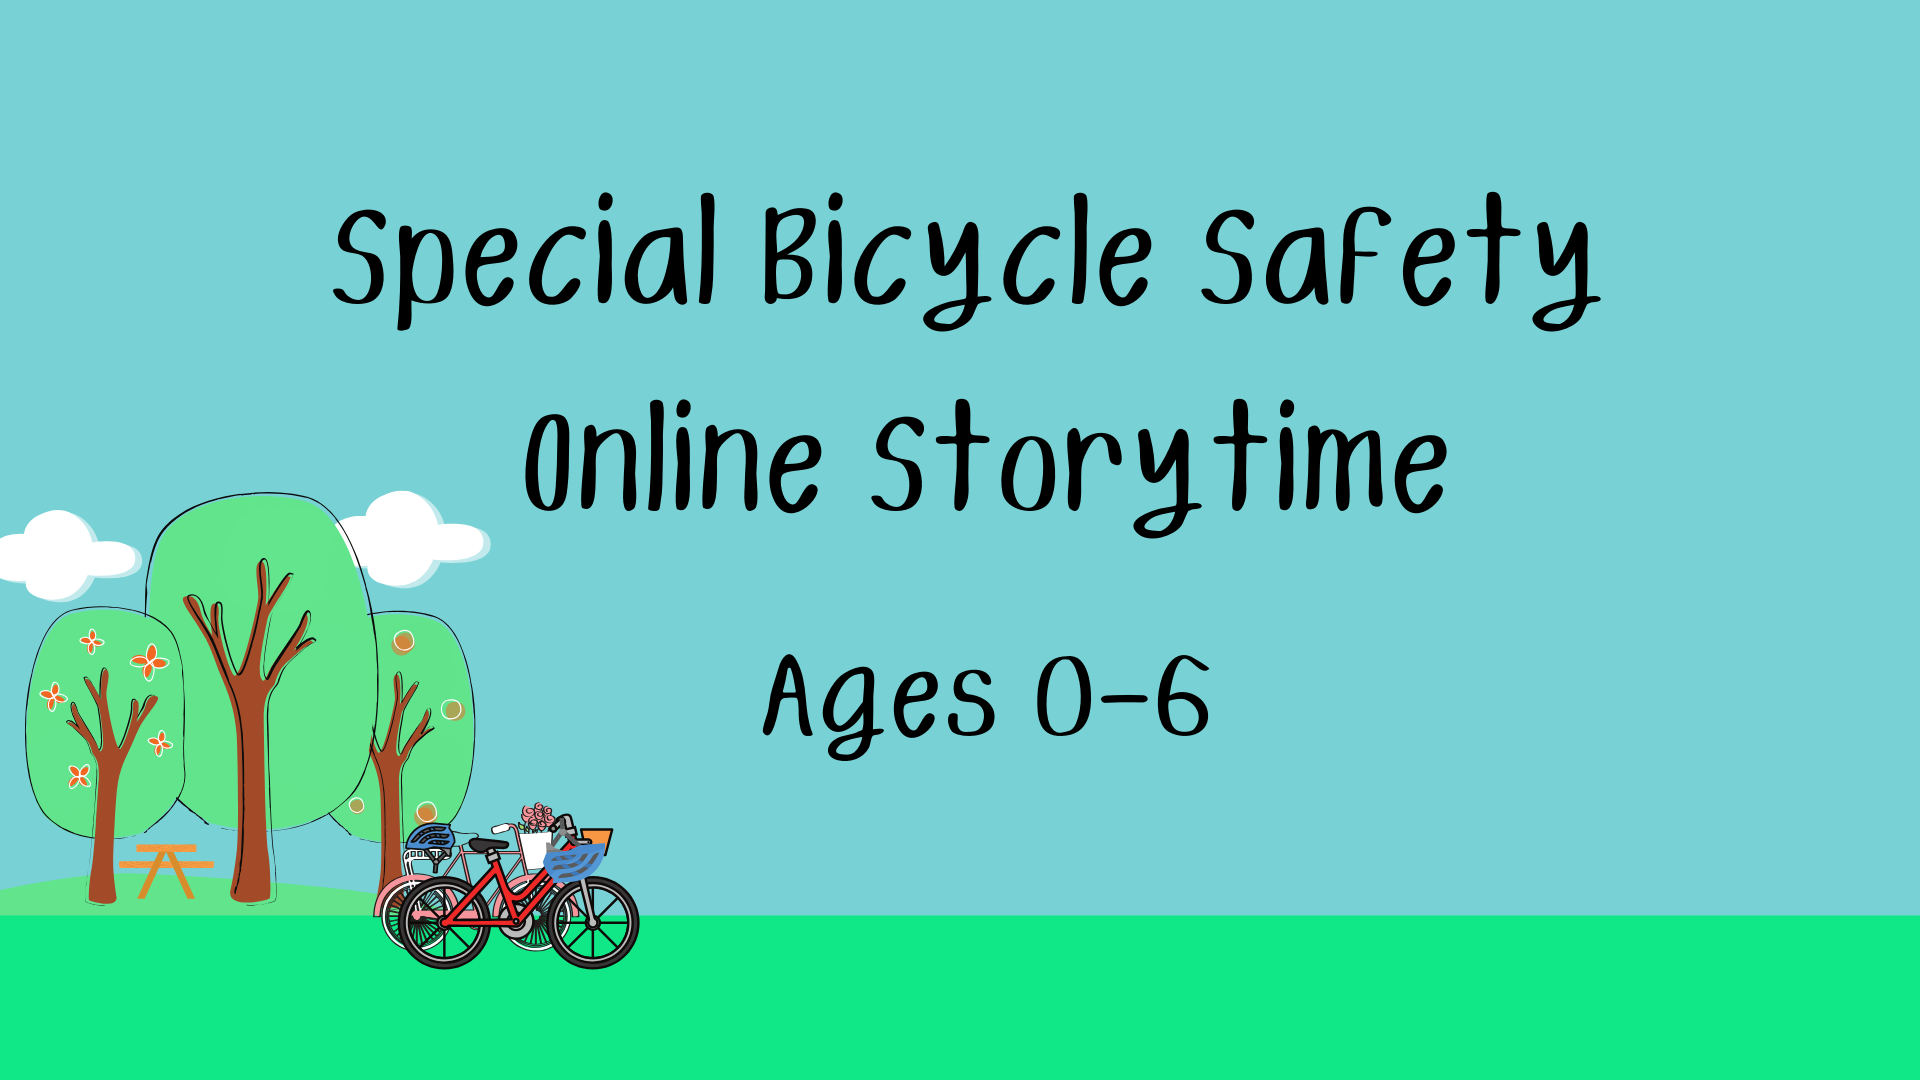 Special Bicycle Safety Online Storytime Ages 0-6